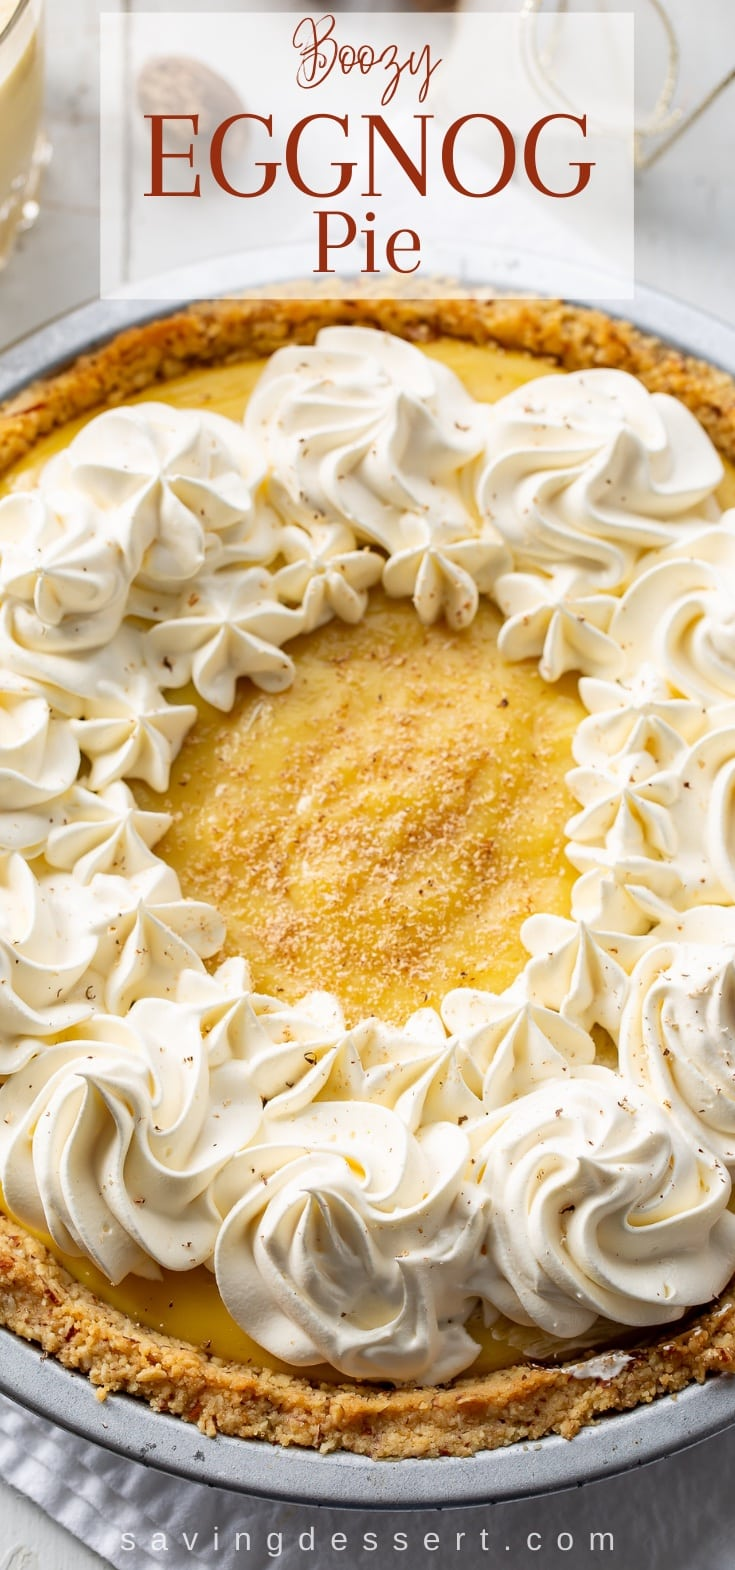 An overhead view of a creamy eggnog pie decorated with whipped cream swirls and a dusting of nutmeg